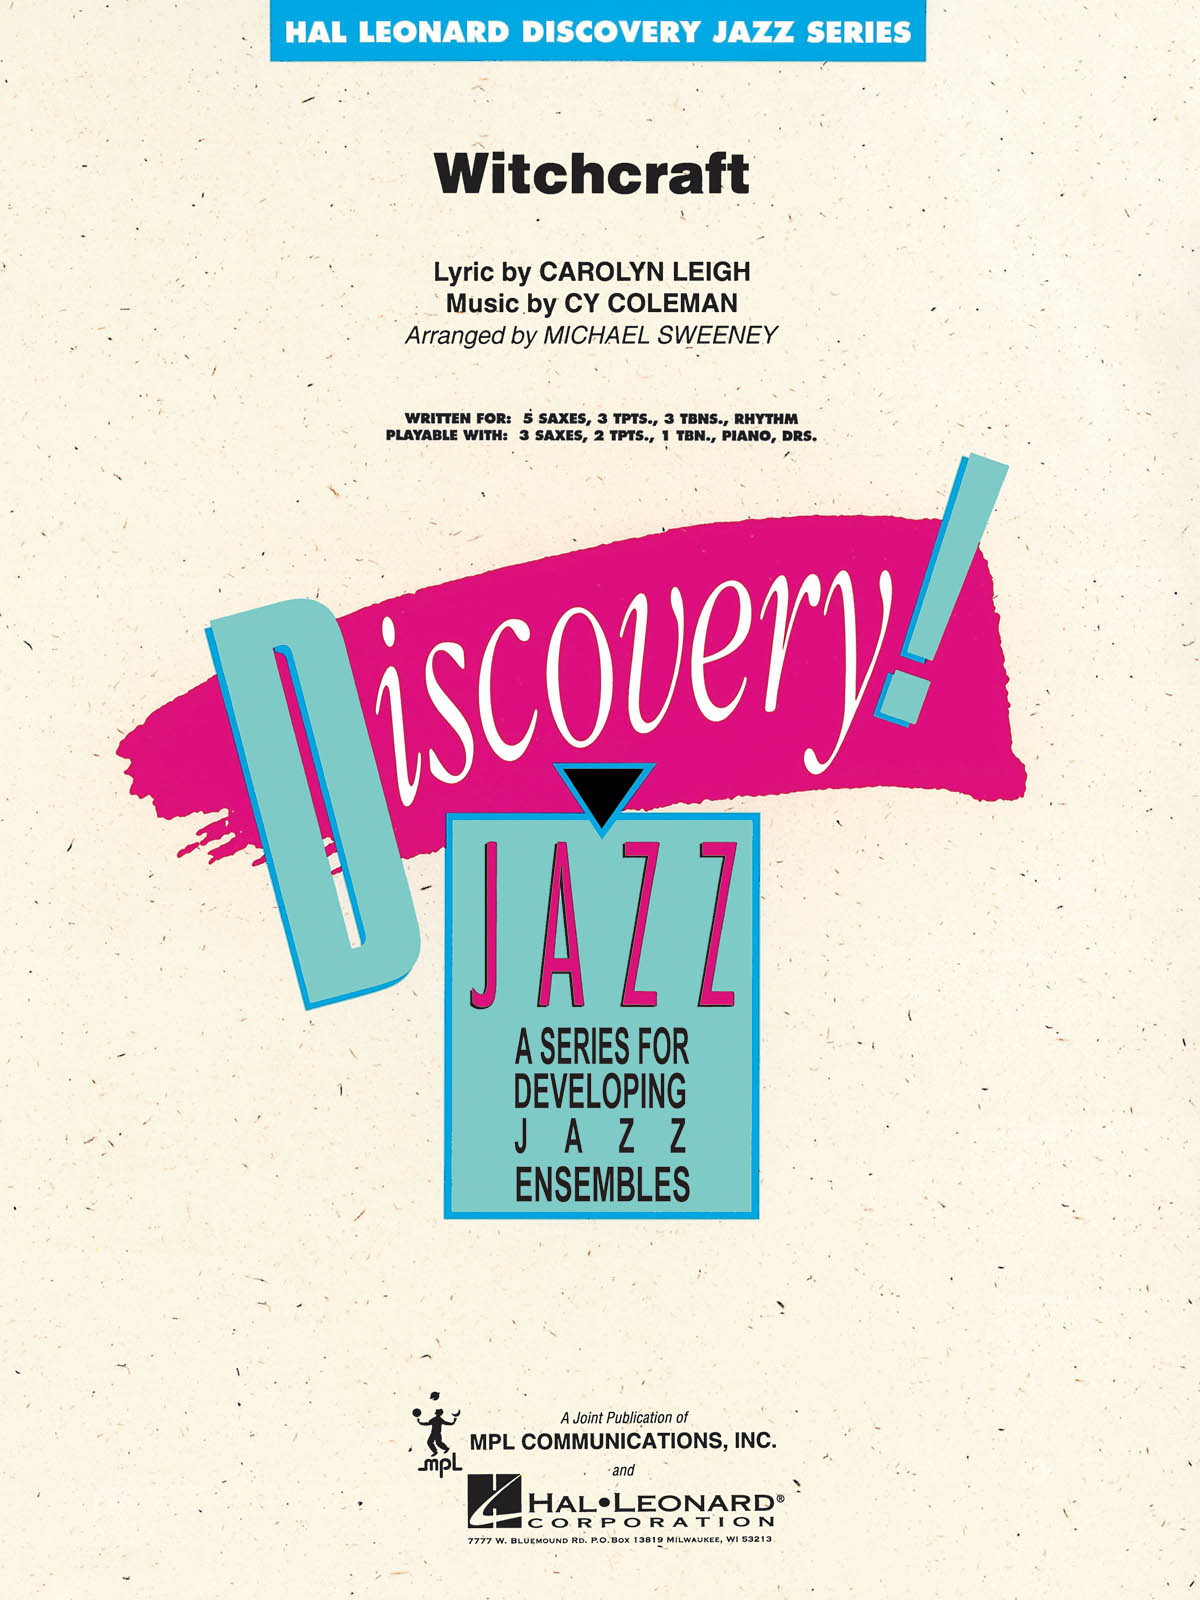 Witchcraft: Discovery Jazz